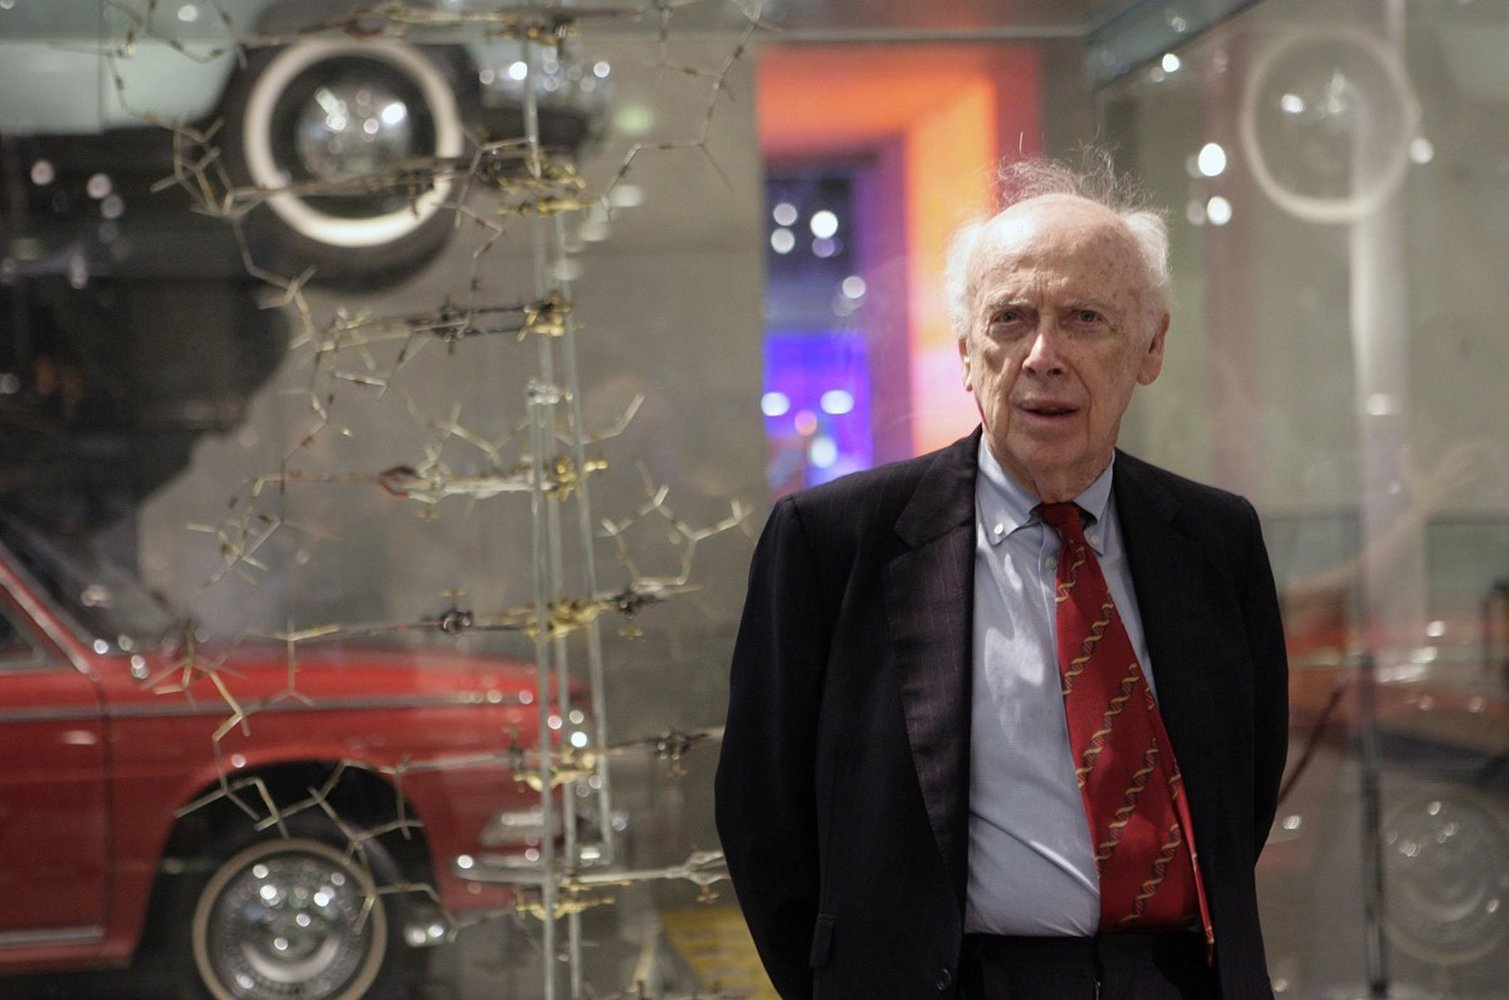 James Watson, Co-Discoverer of DNA Structure, Stripped of Honors Over Racist Statements